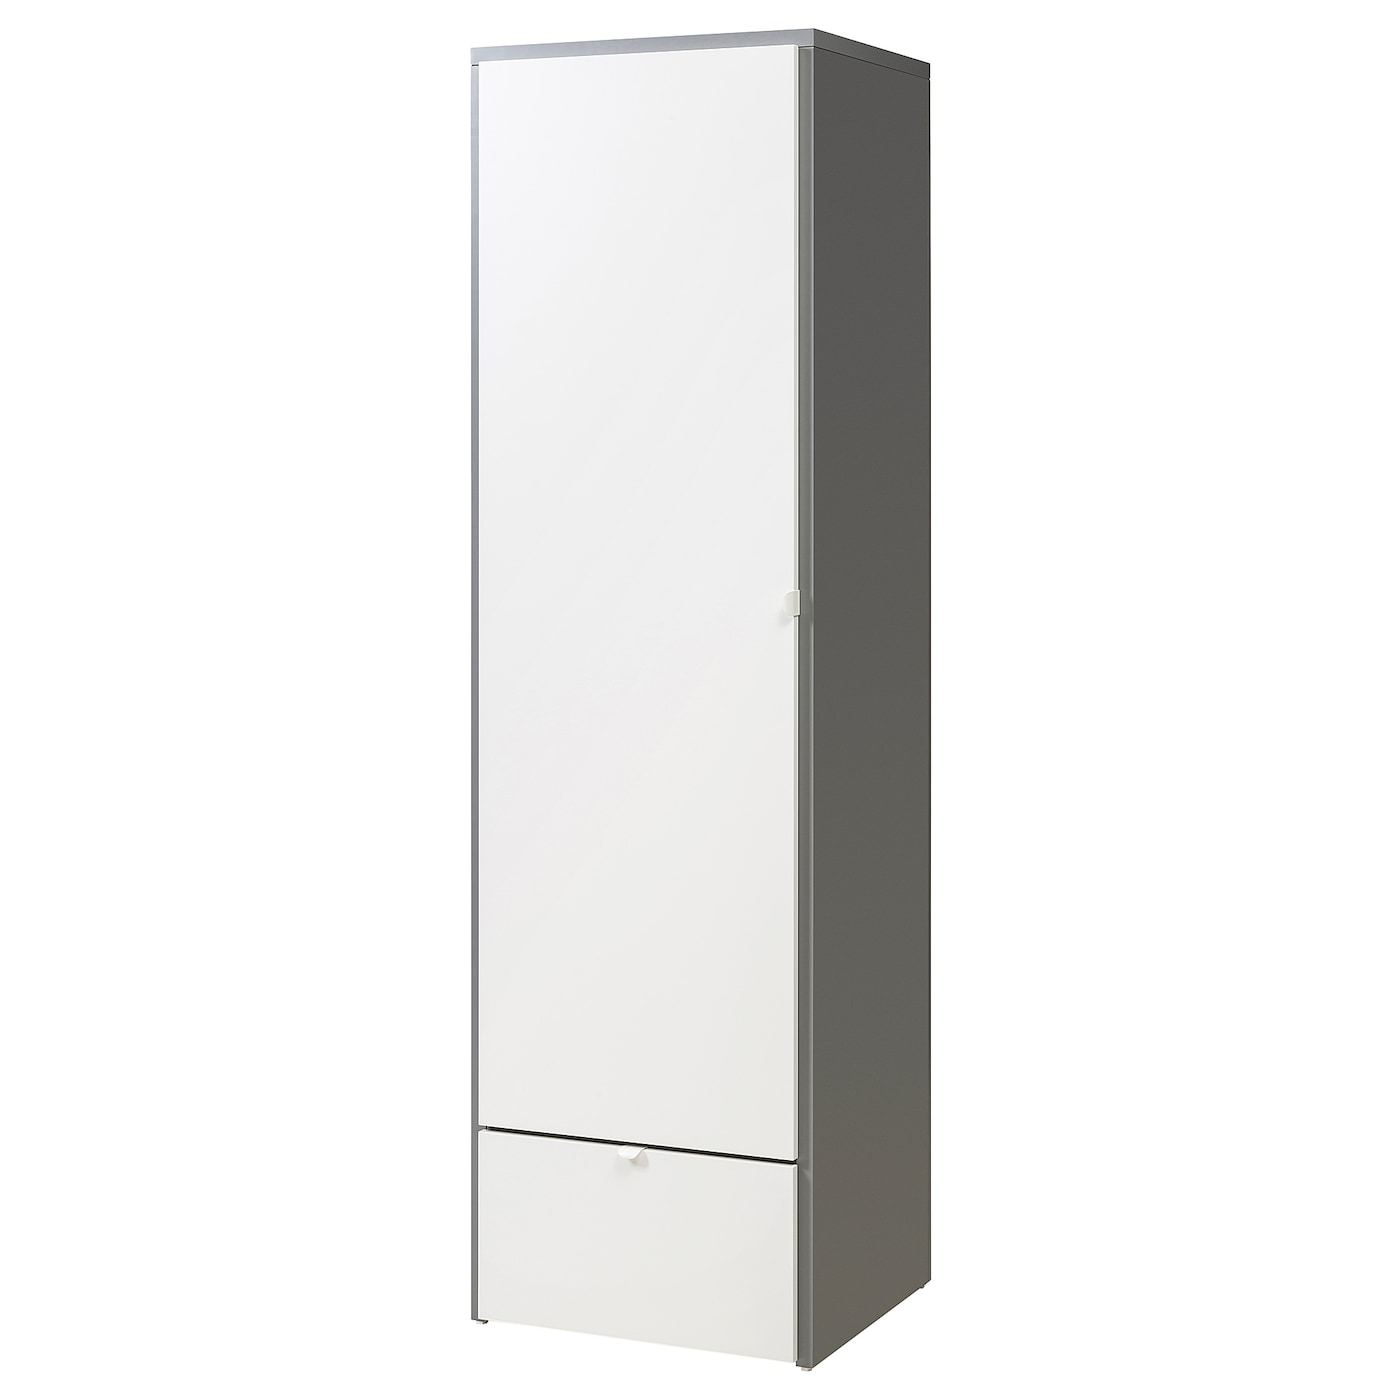 visthus armoire penderie gris blanc 63 x 59 x 216 cm ikea. Black Bedroom Furniture Sets. Home Design Ideas